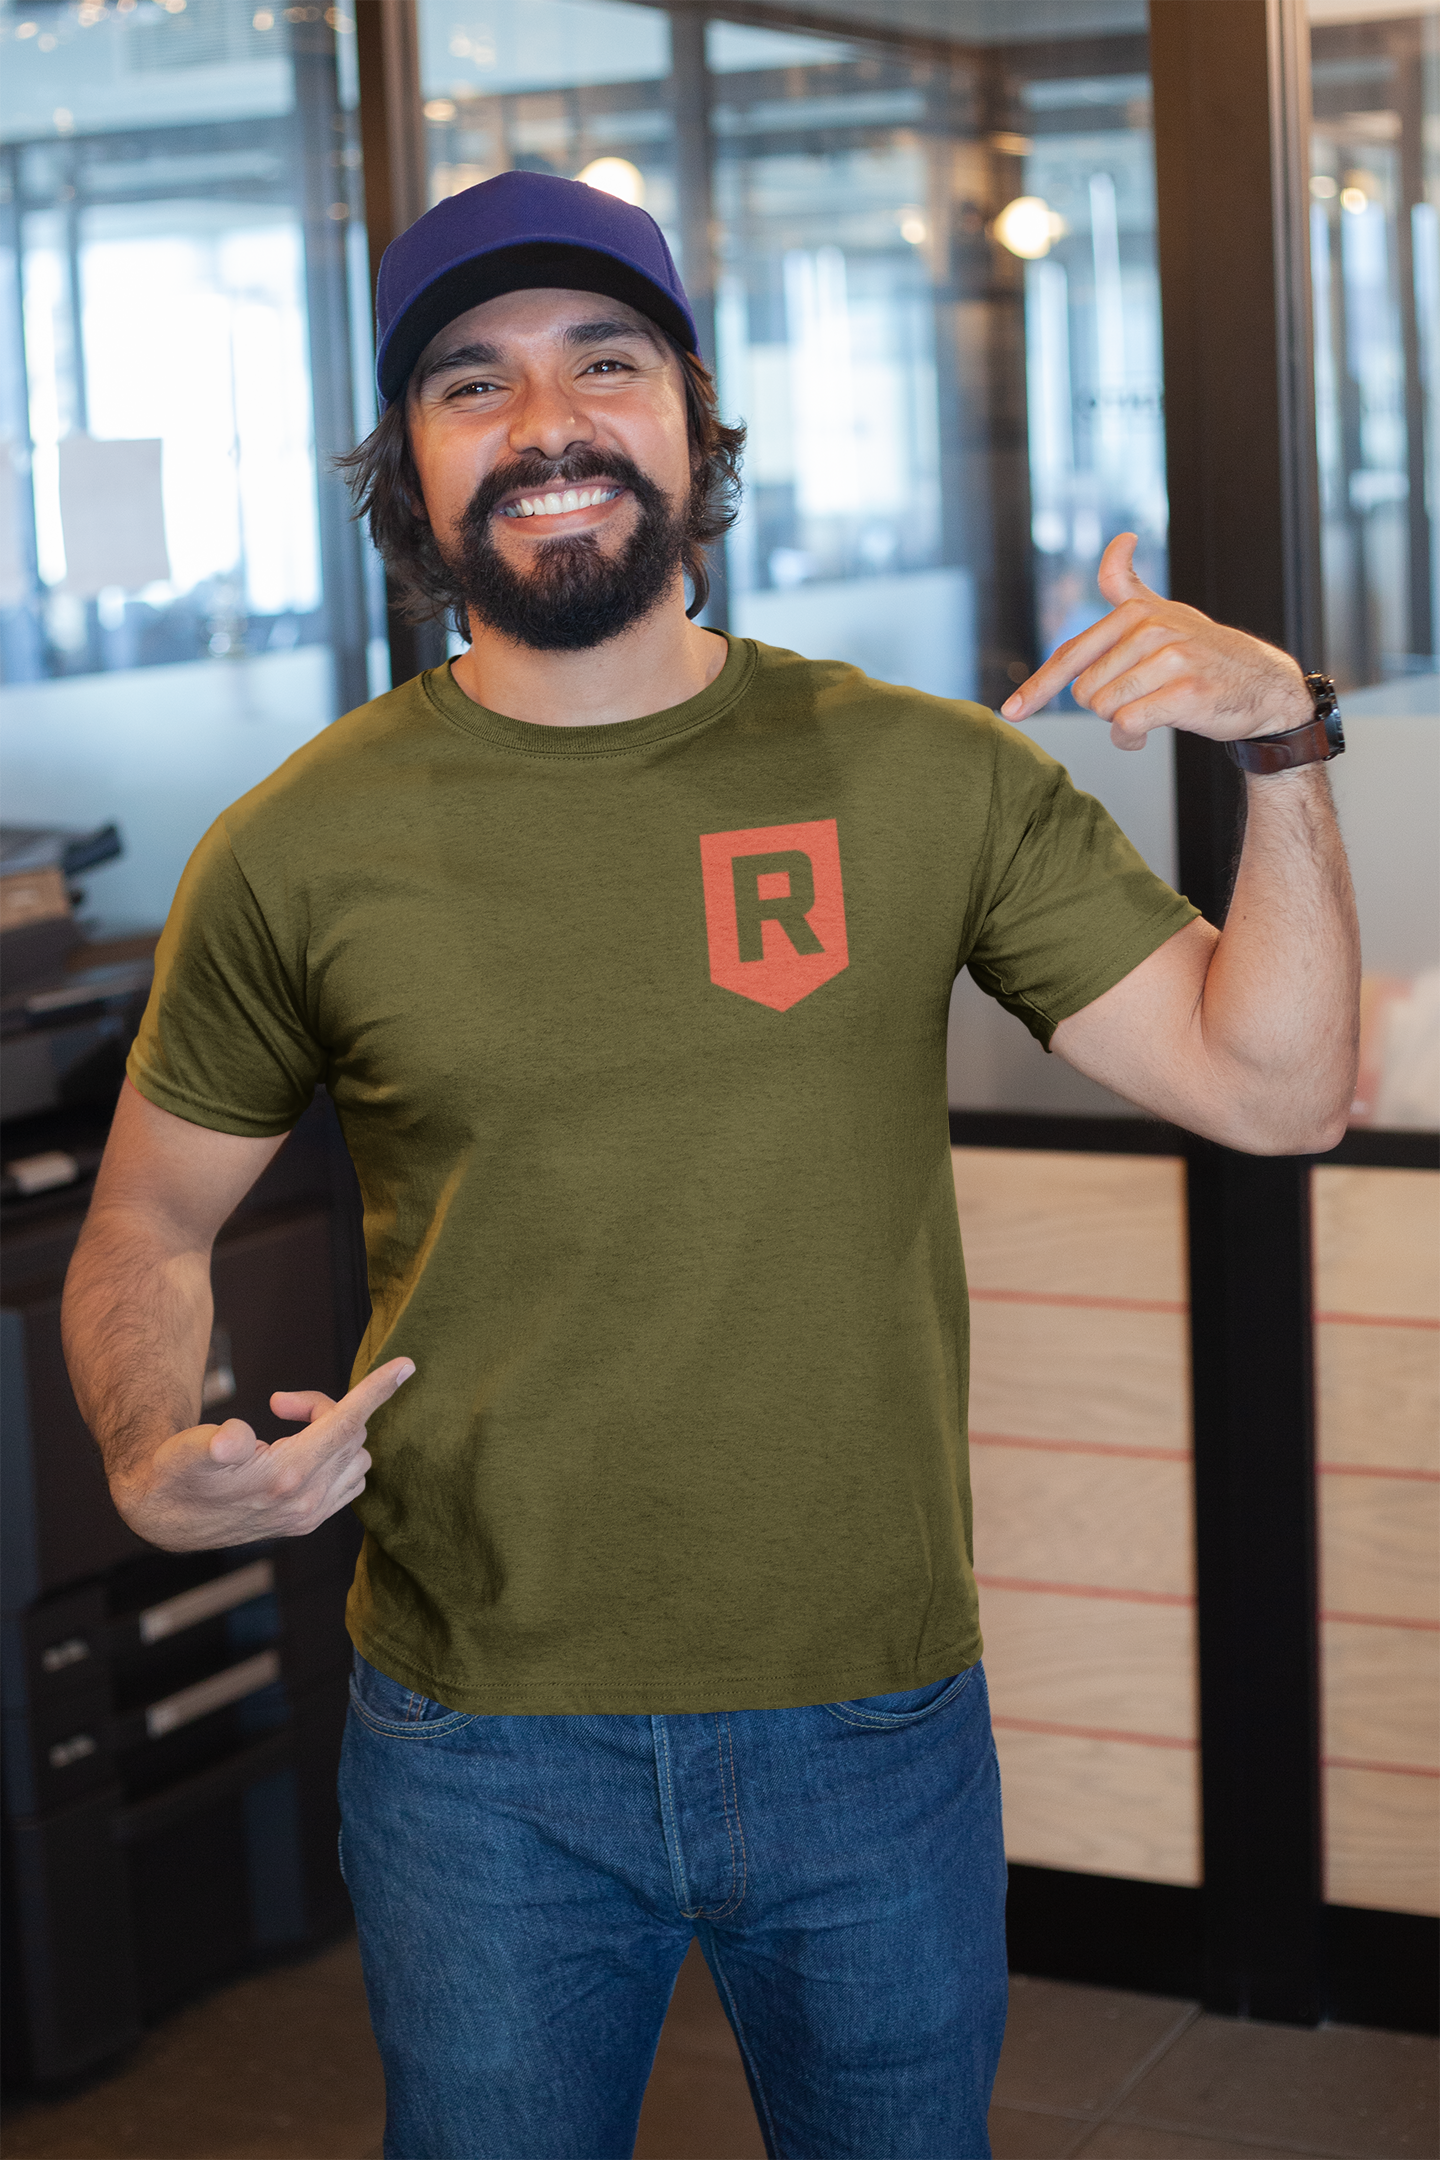 mockup-of-a-happy-customer-showing-off-his-t-shirt-inside-a-modern-office-26189.png